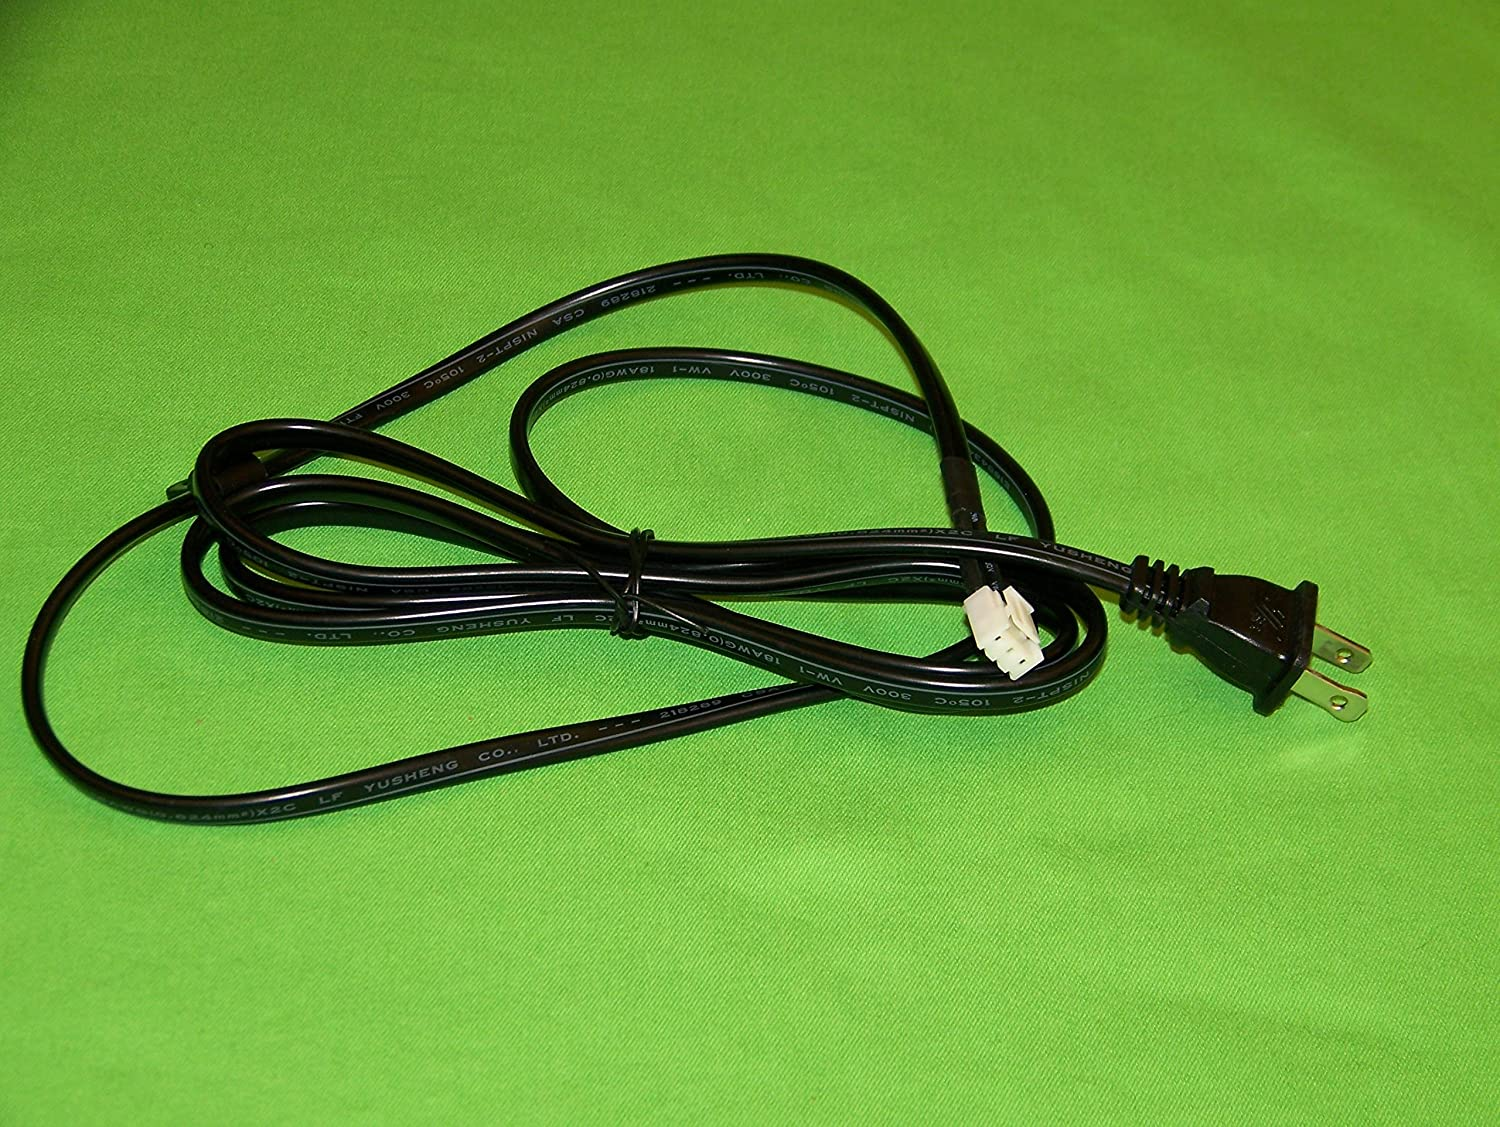 OEM Insignia Power Cord Cable USA Only Originally Shipped With NS46E481A13, NS-46E481A13